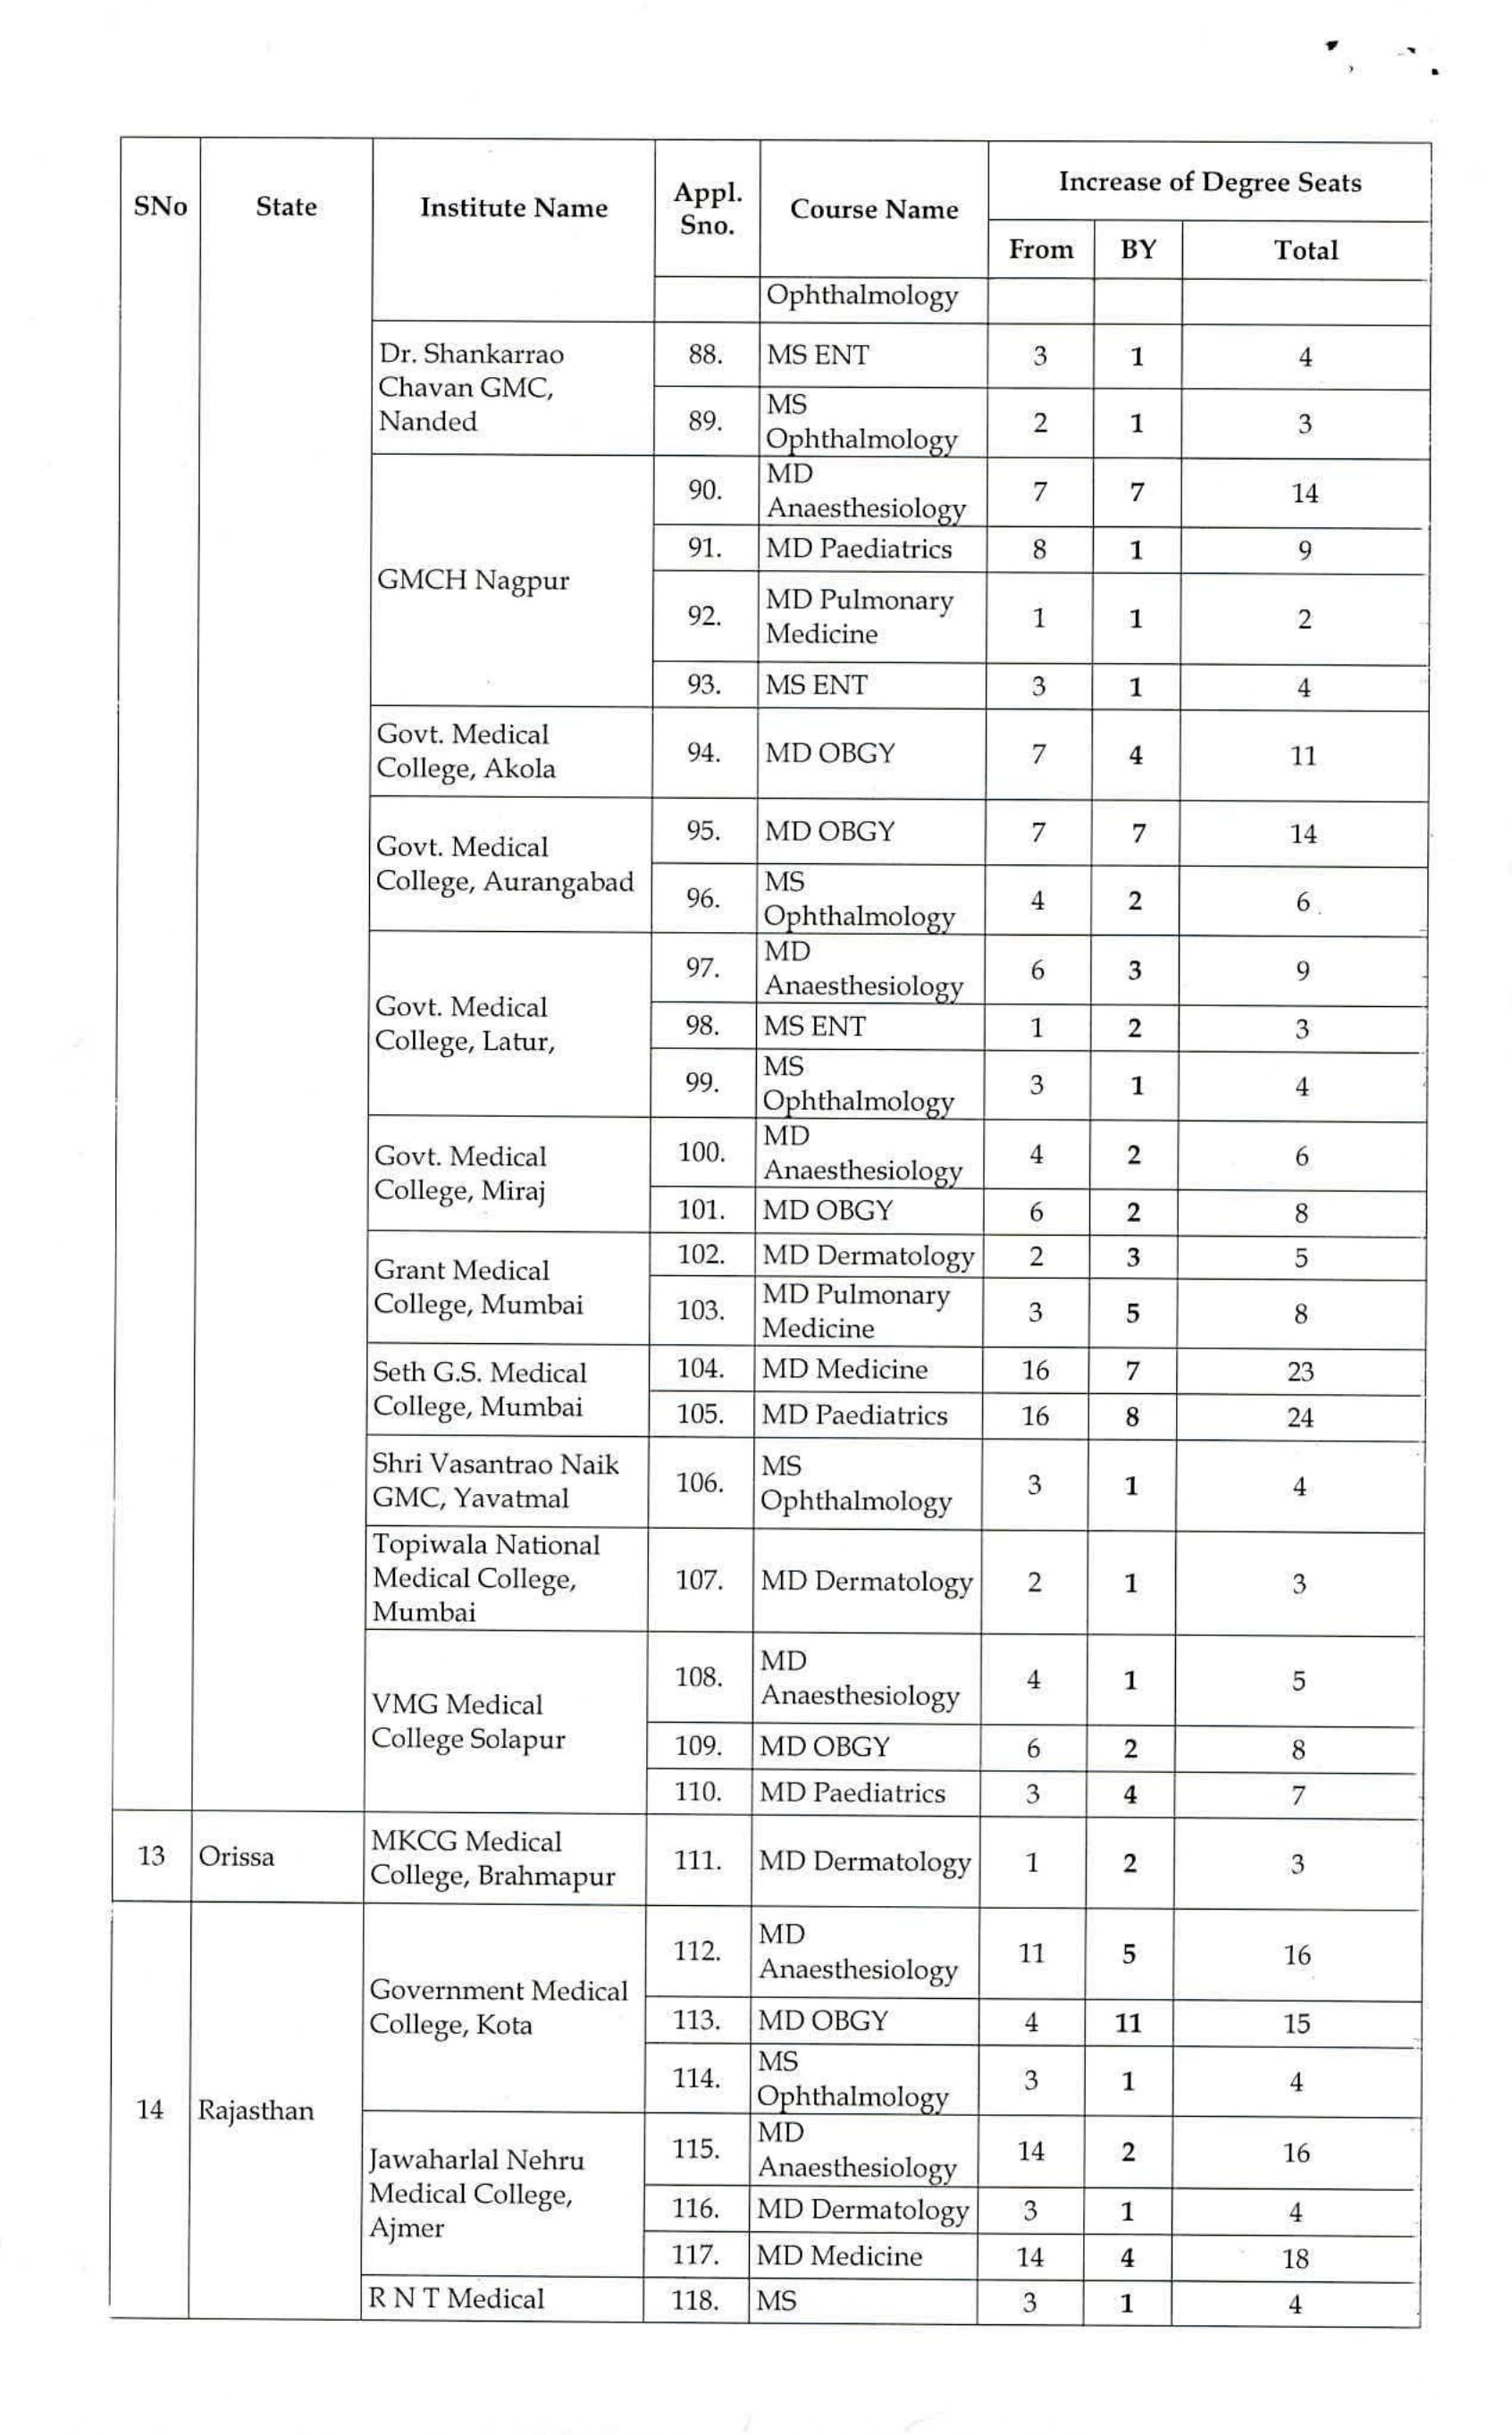 More than 600 PG Medical Seats Increased for MD/MS (Broad Speciality) Courses